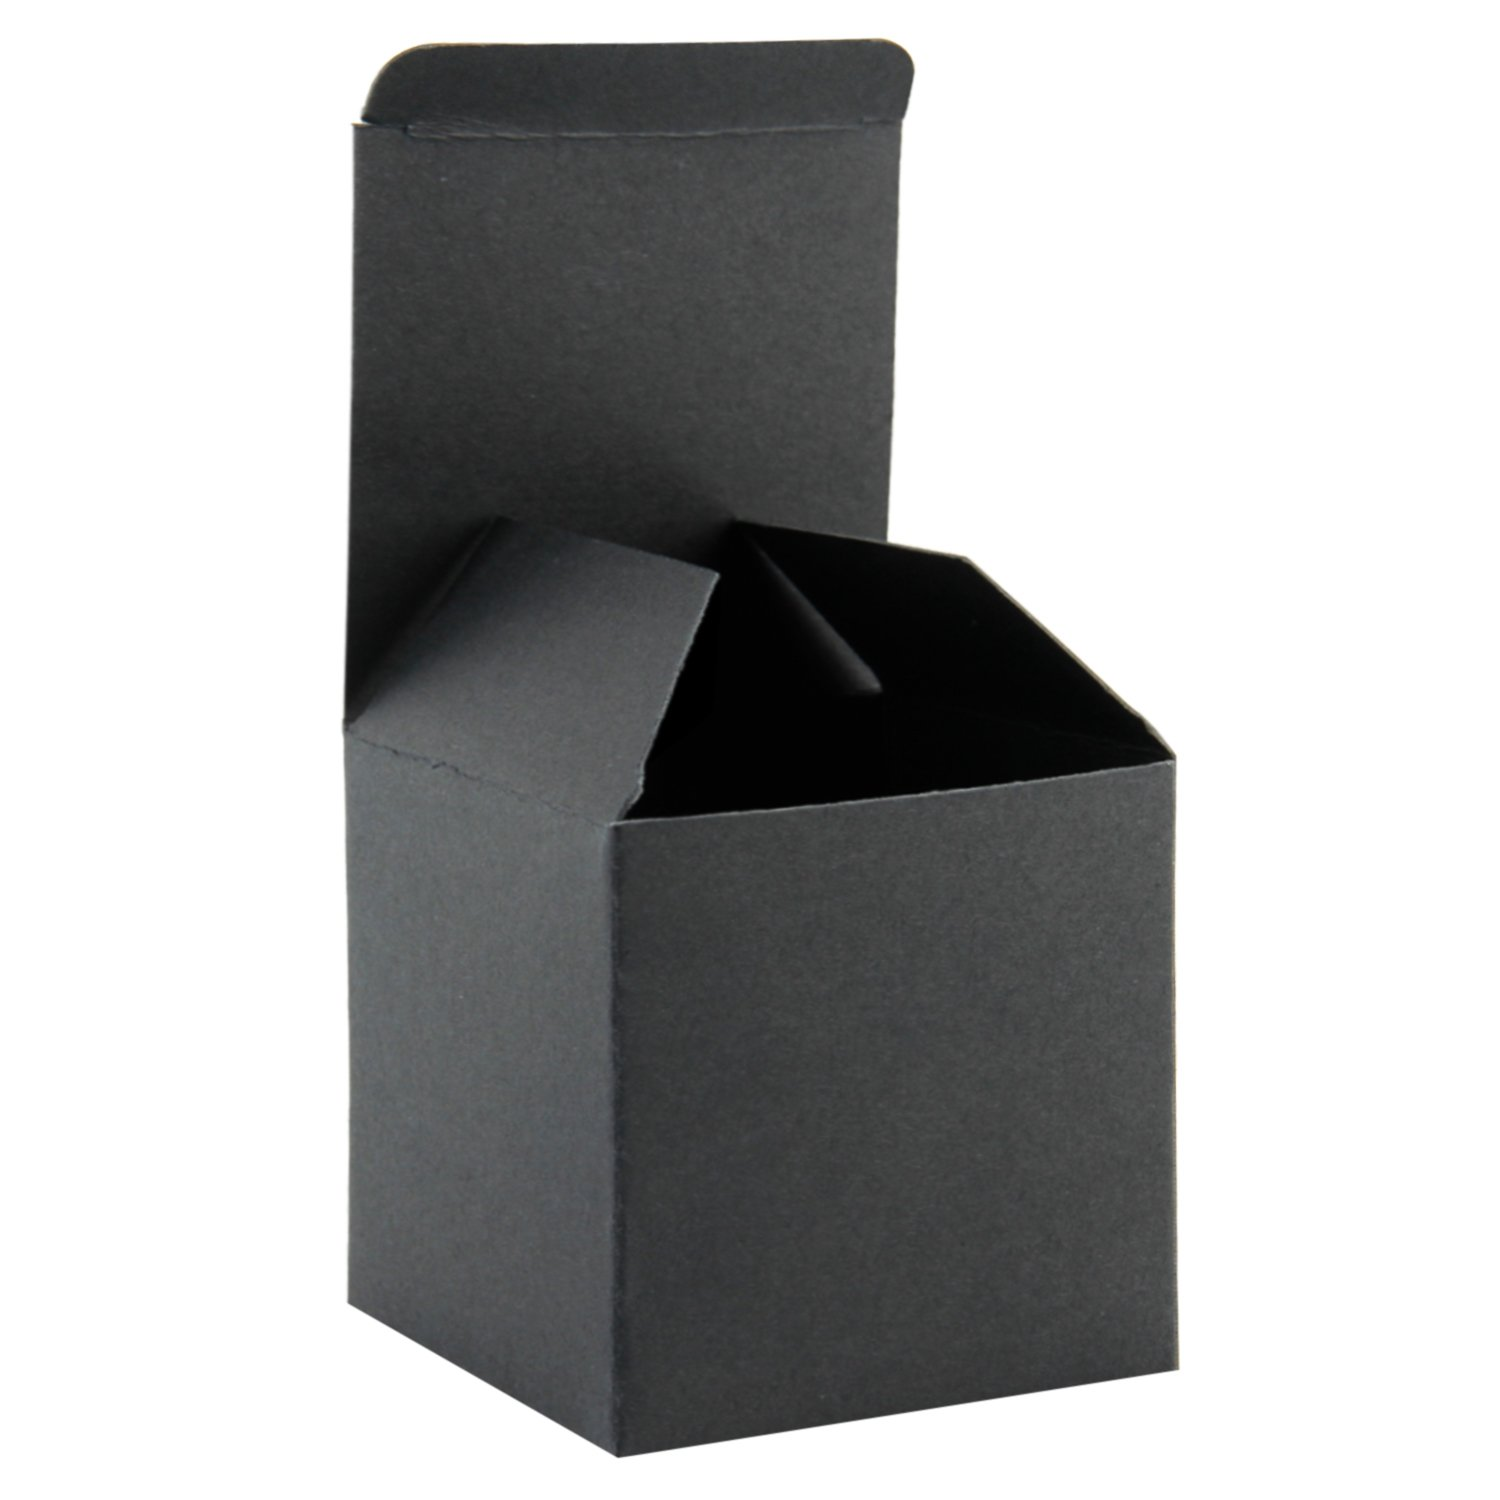 Ruspepa Recycled Cardboard Gift Boxes Small Square Gift Boxes With Lids For Party And Crafts